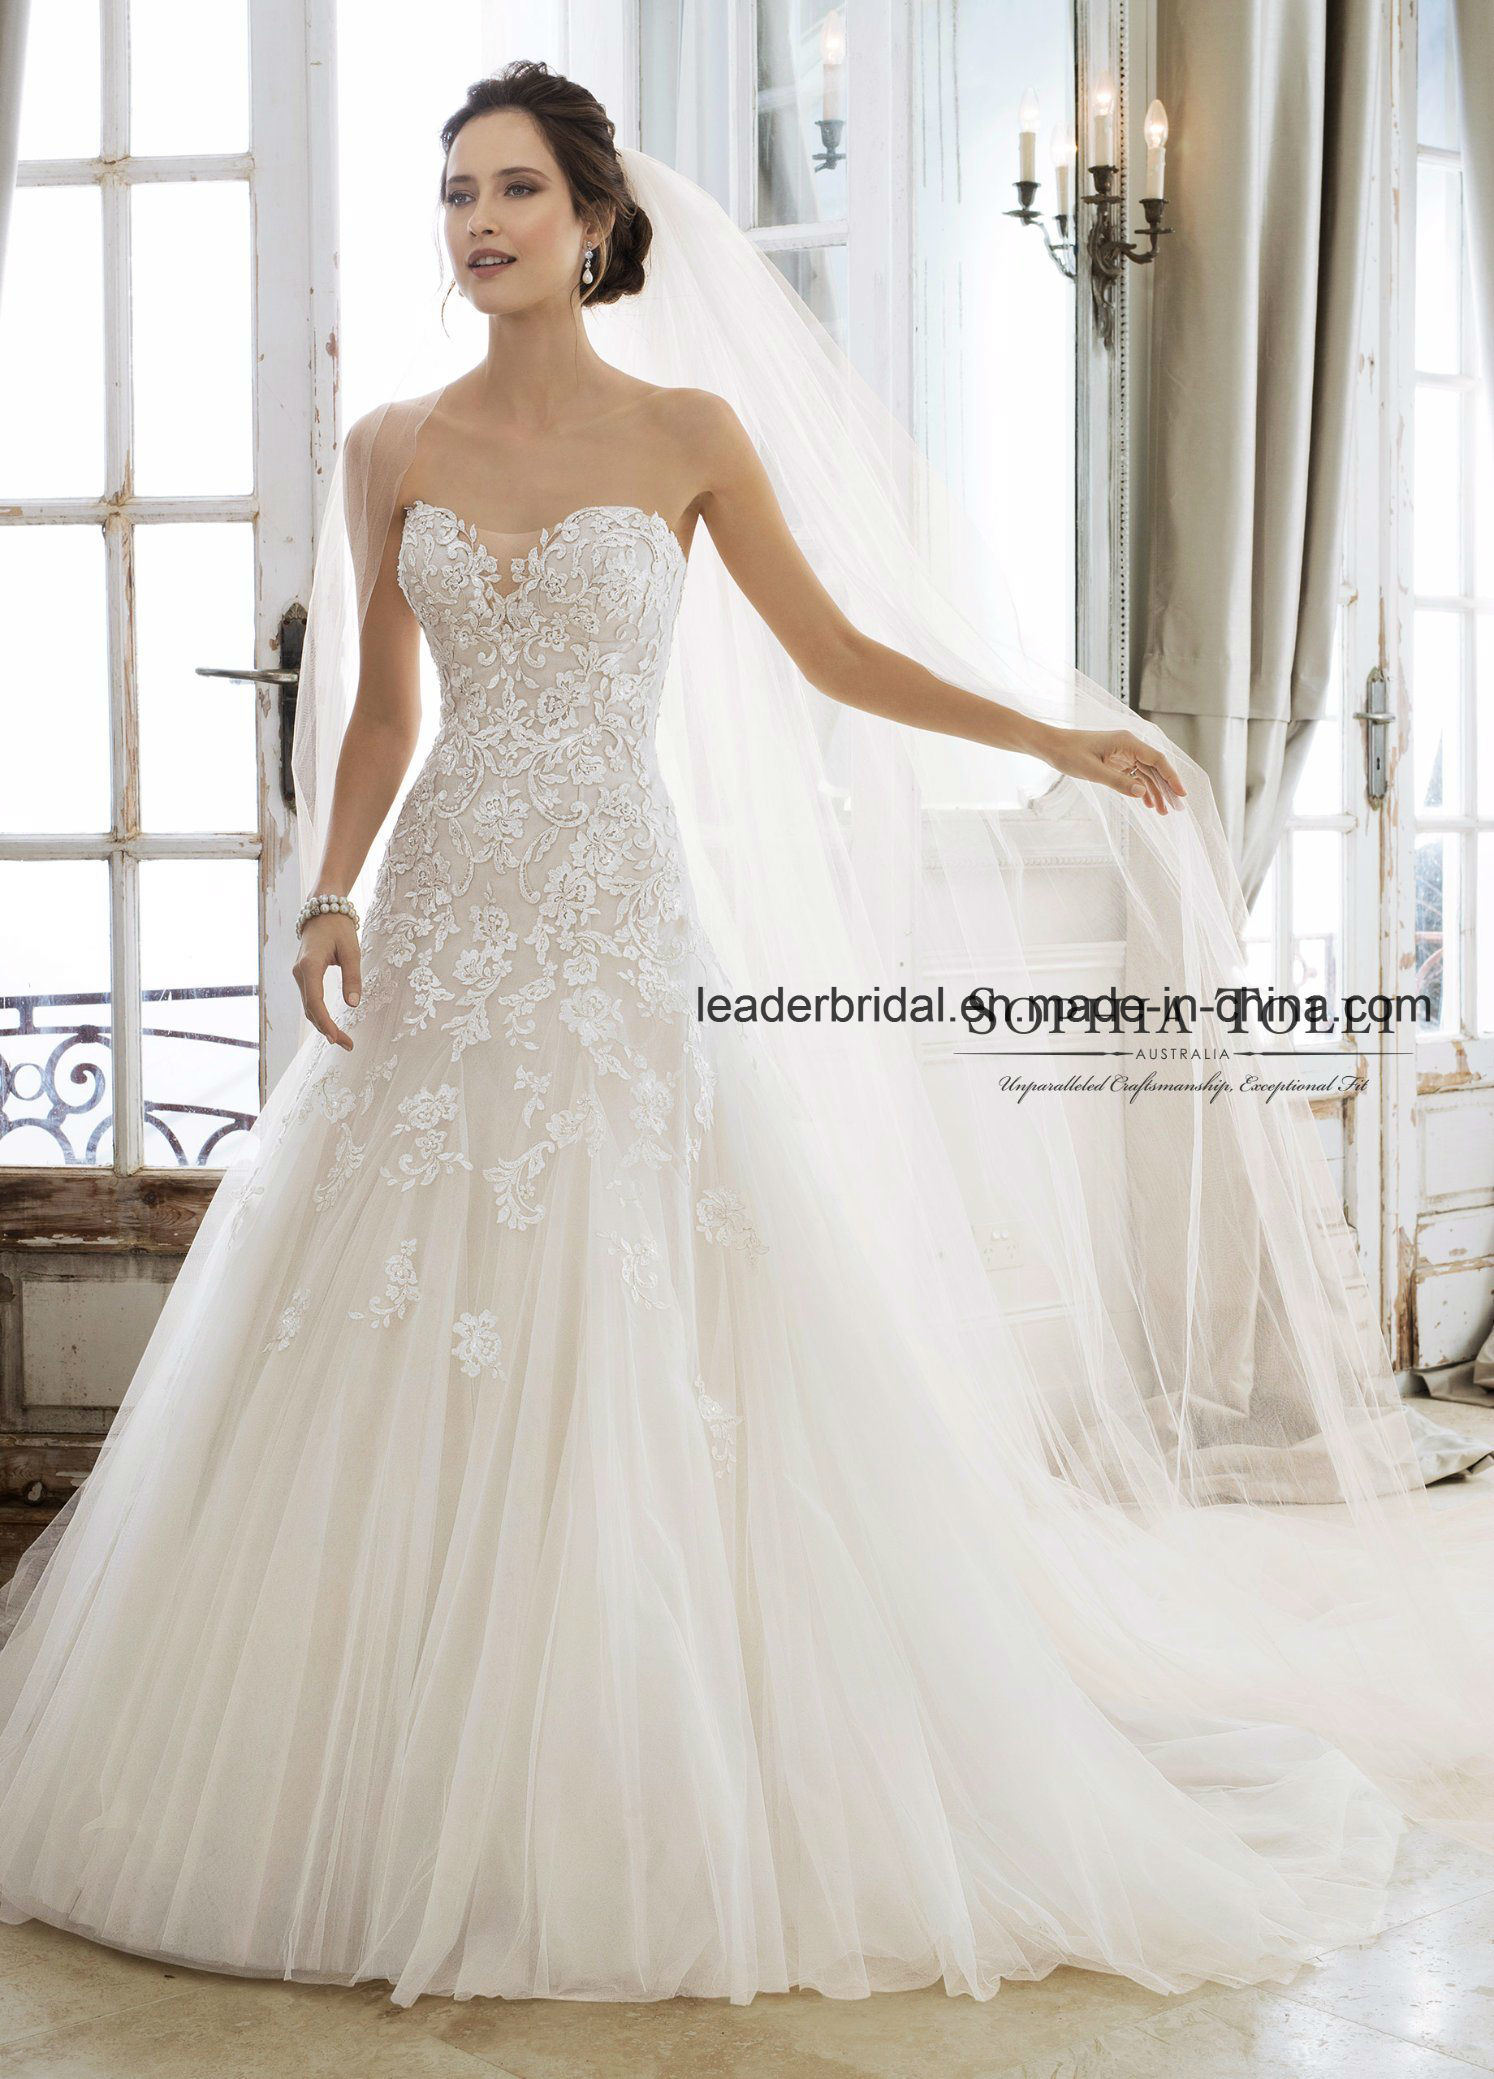 A Line Wedding Dresses.Hot Item Strapless Bridal Dress Strapless A Line Lace Beaded Wedding Dresses 2018 E13426